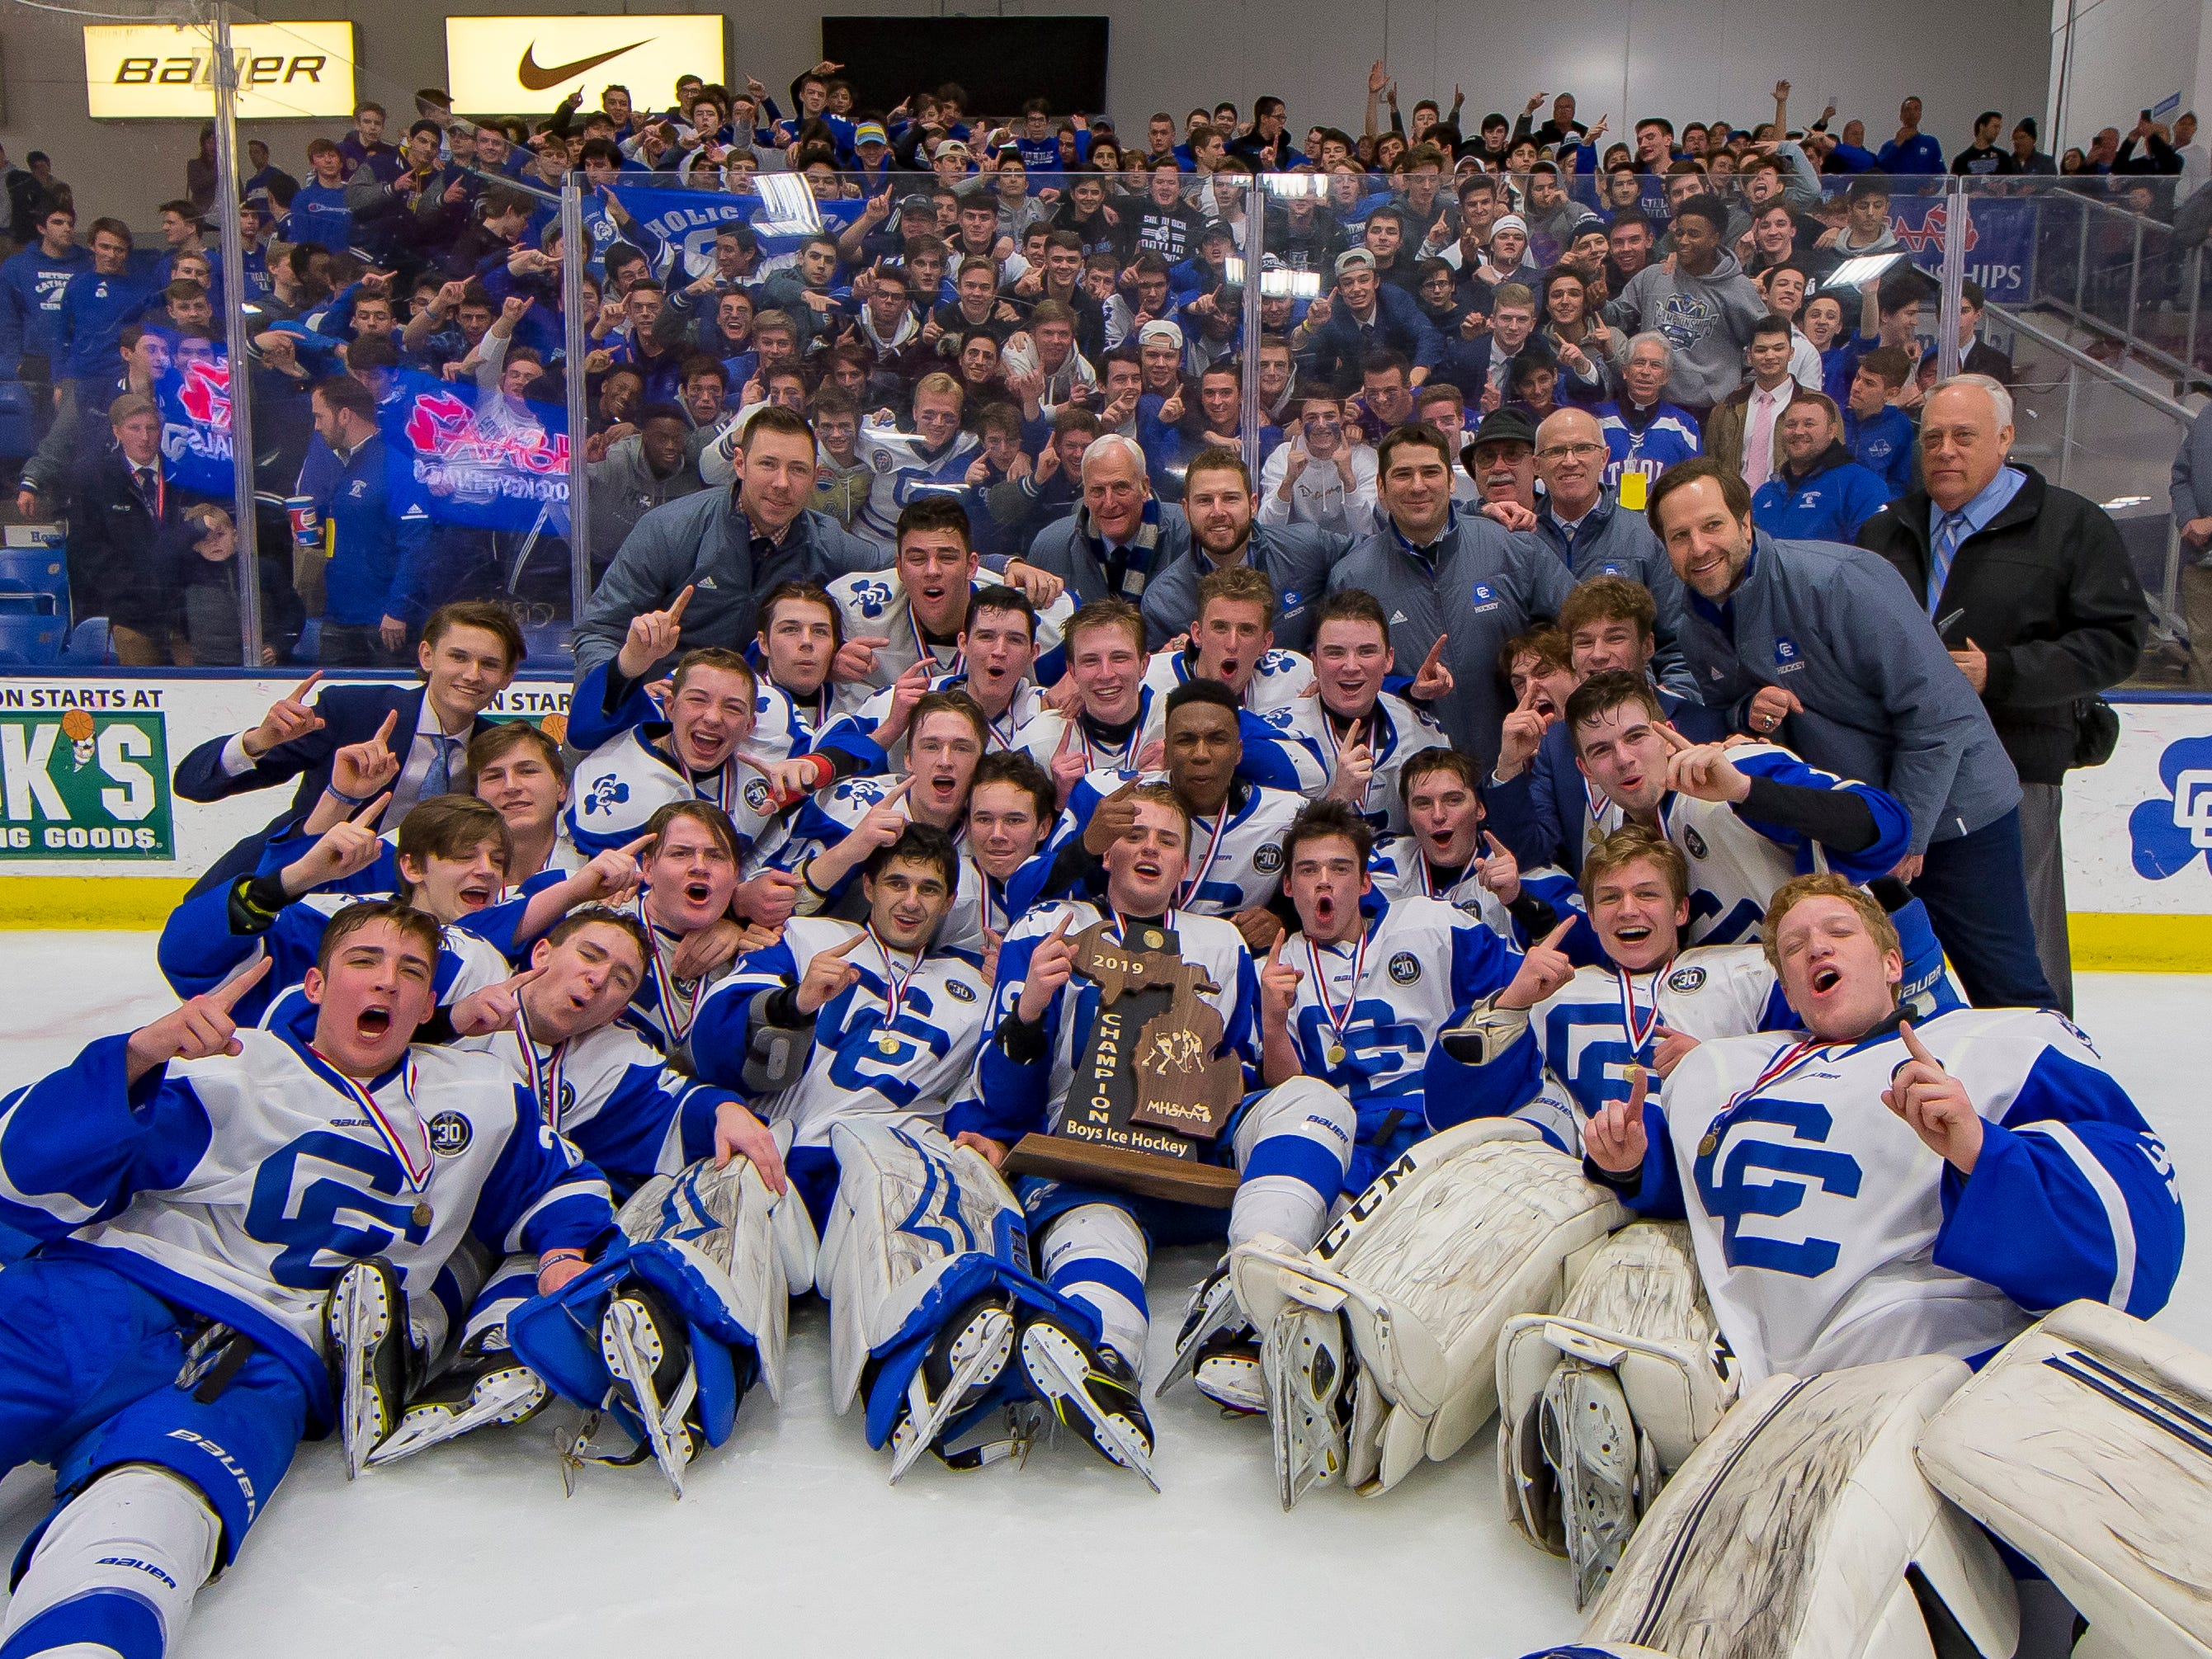 The Catholic Central team poses for a team picture after defeating Saginaw Heritage 3-1 to win the MHSAA Division 1 Championship at USA Arena in Plymouthy on March 9, 2019.